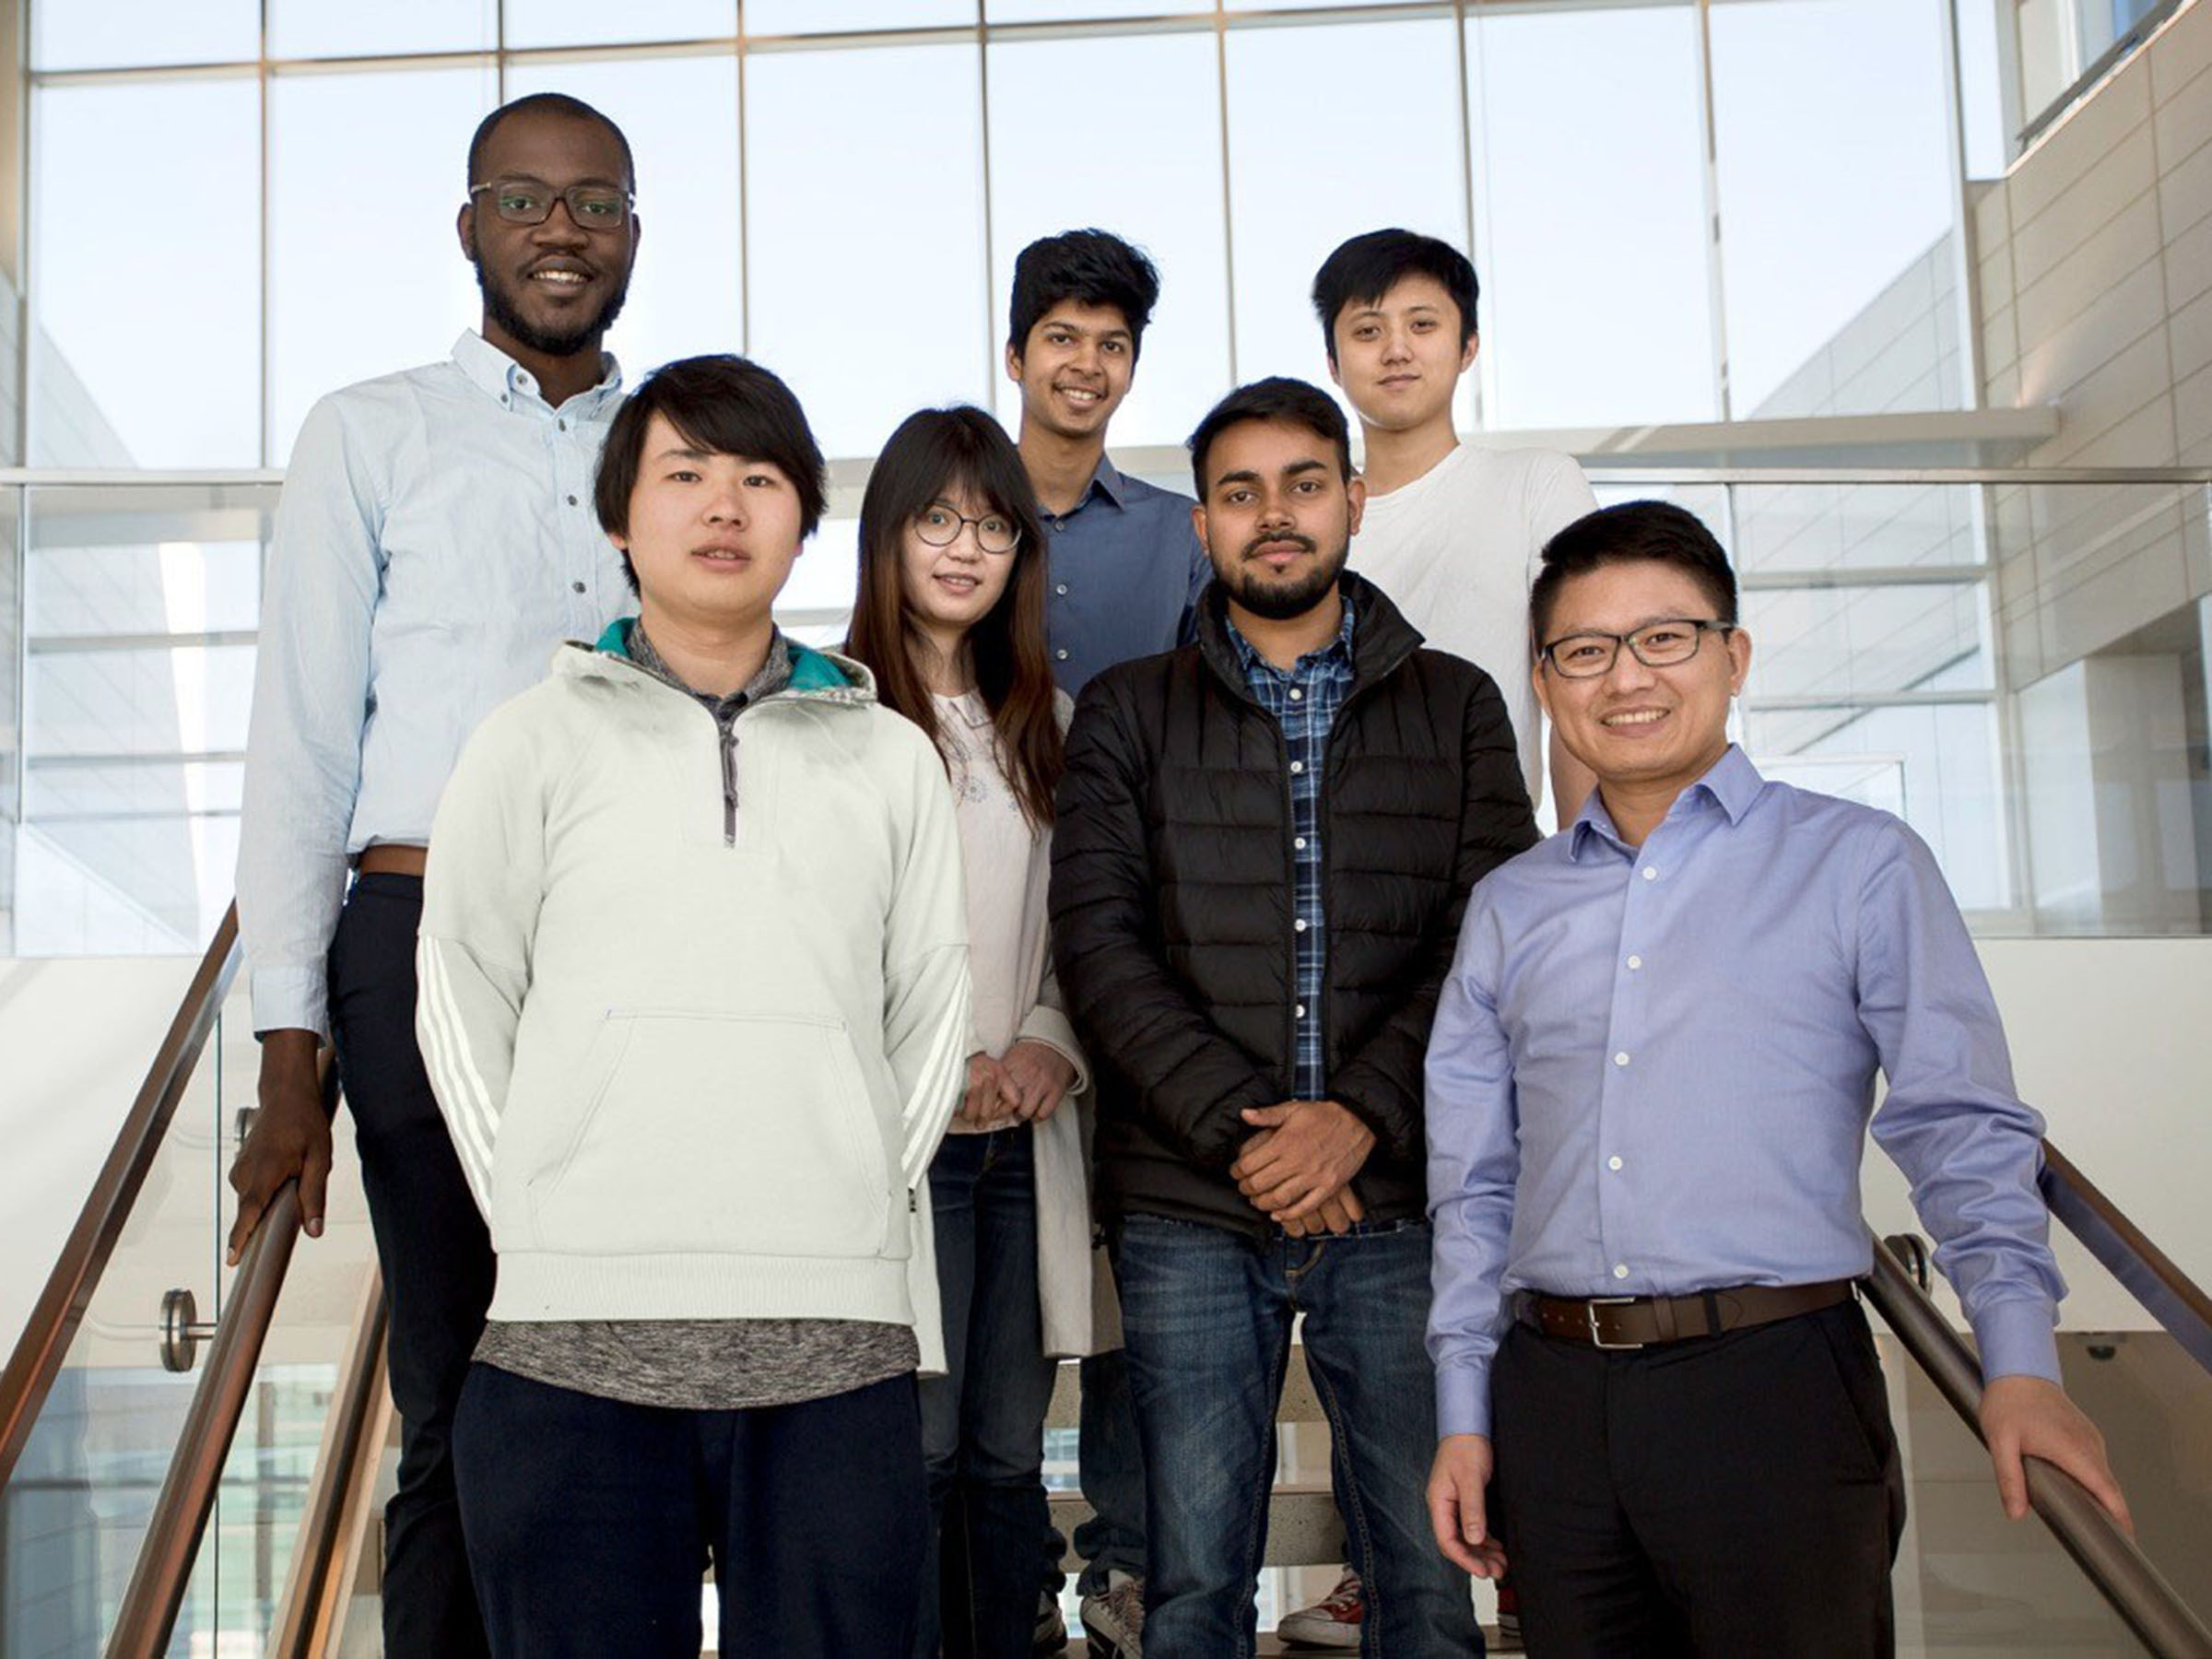 Dr. Simon Dai with his team of Mechanical Engineering Graduate Students